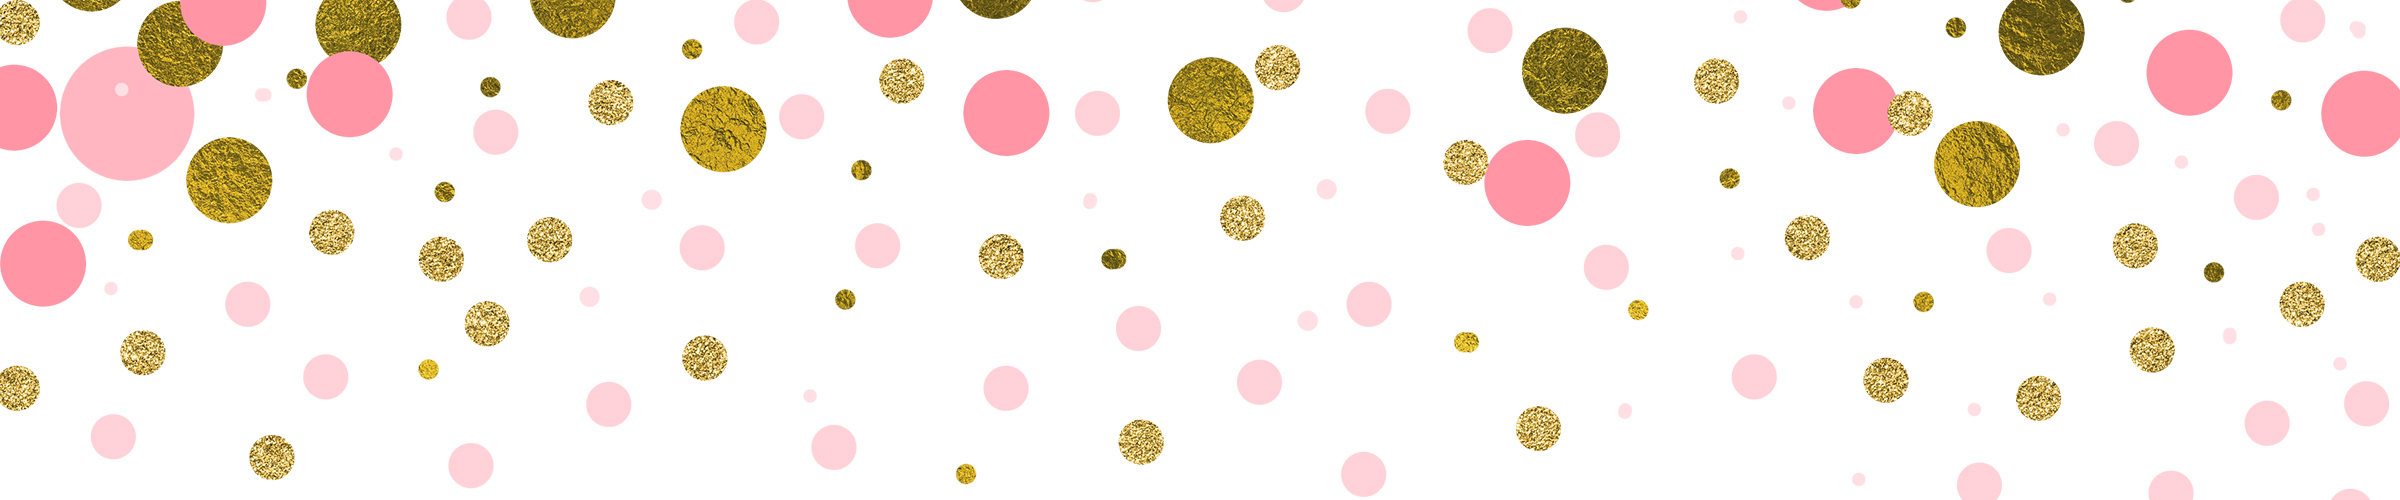 Pink and Gold Confetti Overlays, Pack of 14 PNGs